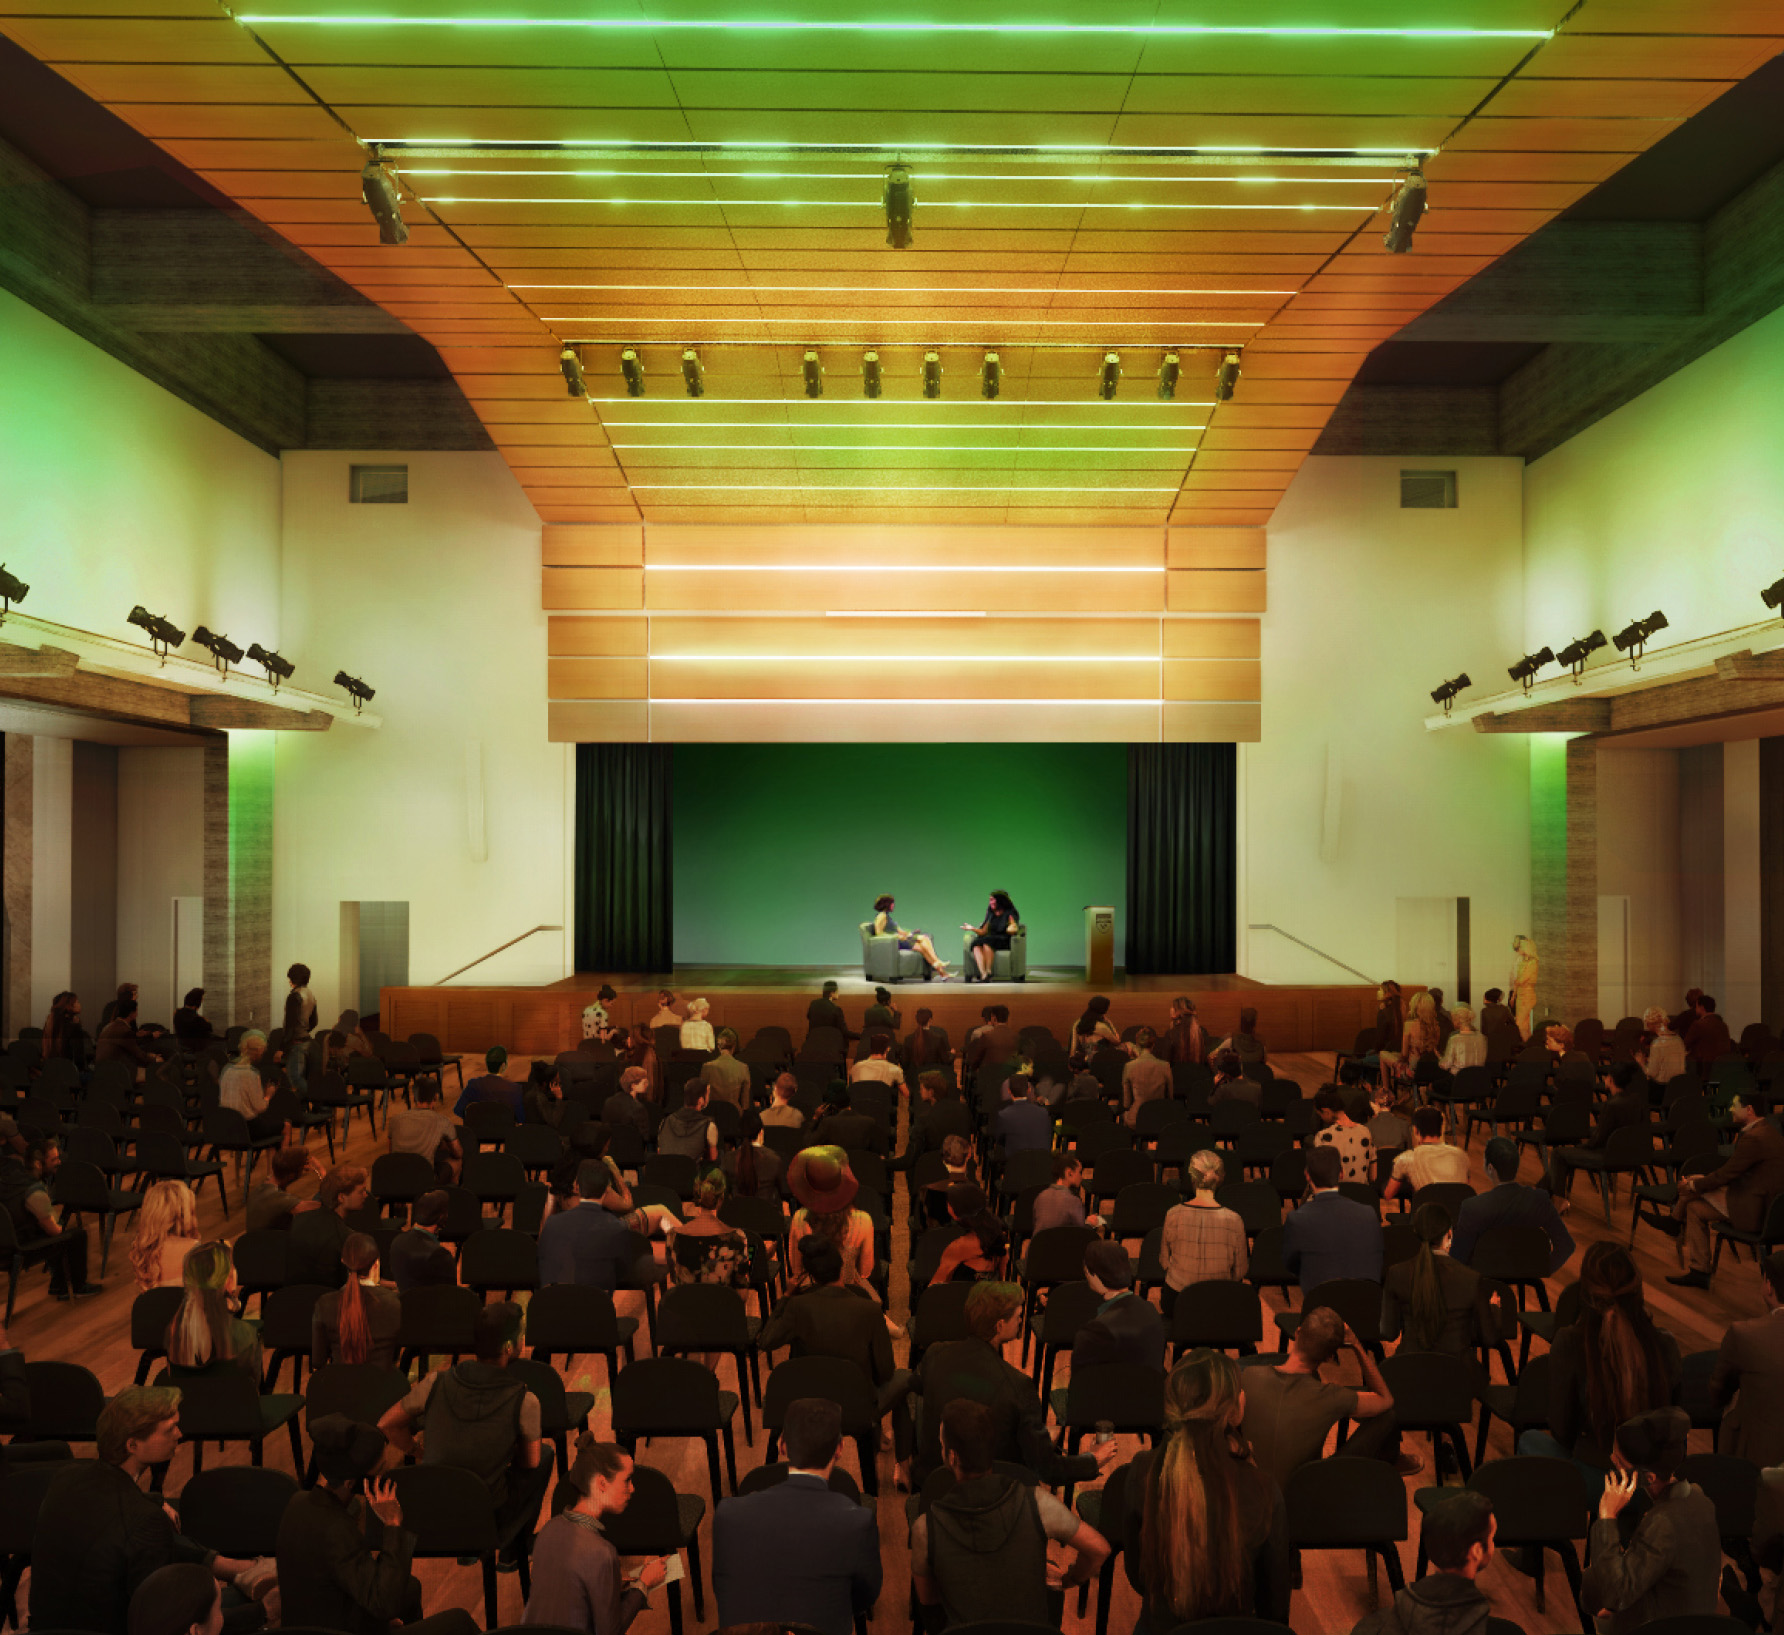 Rendering of Chumash Auditorium featuring green lights and a crowded auditorium